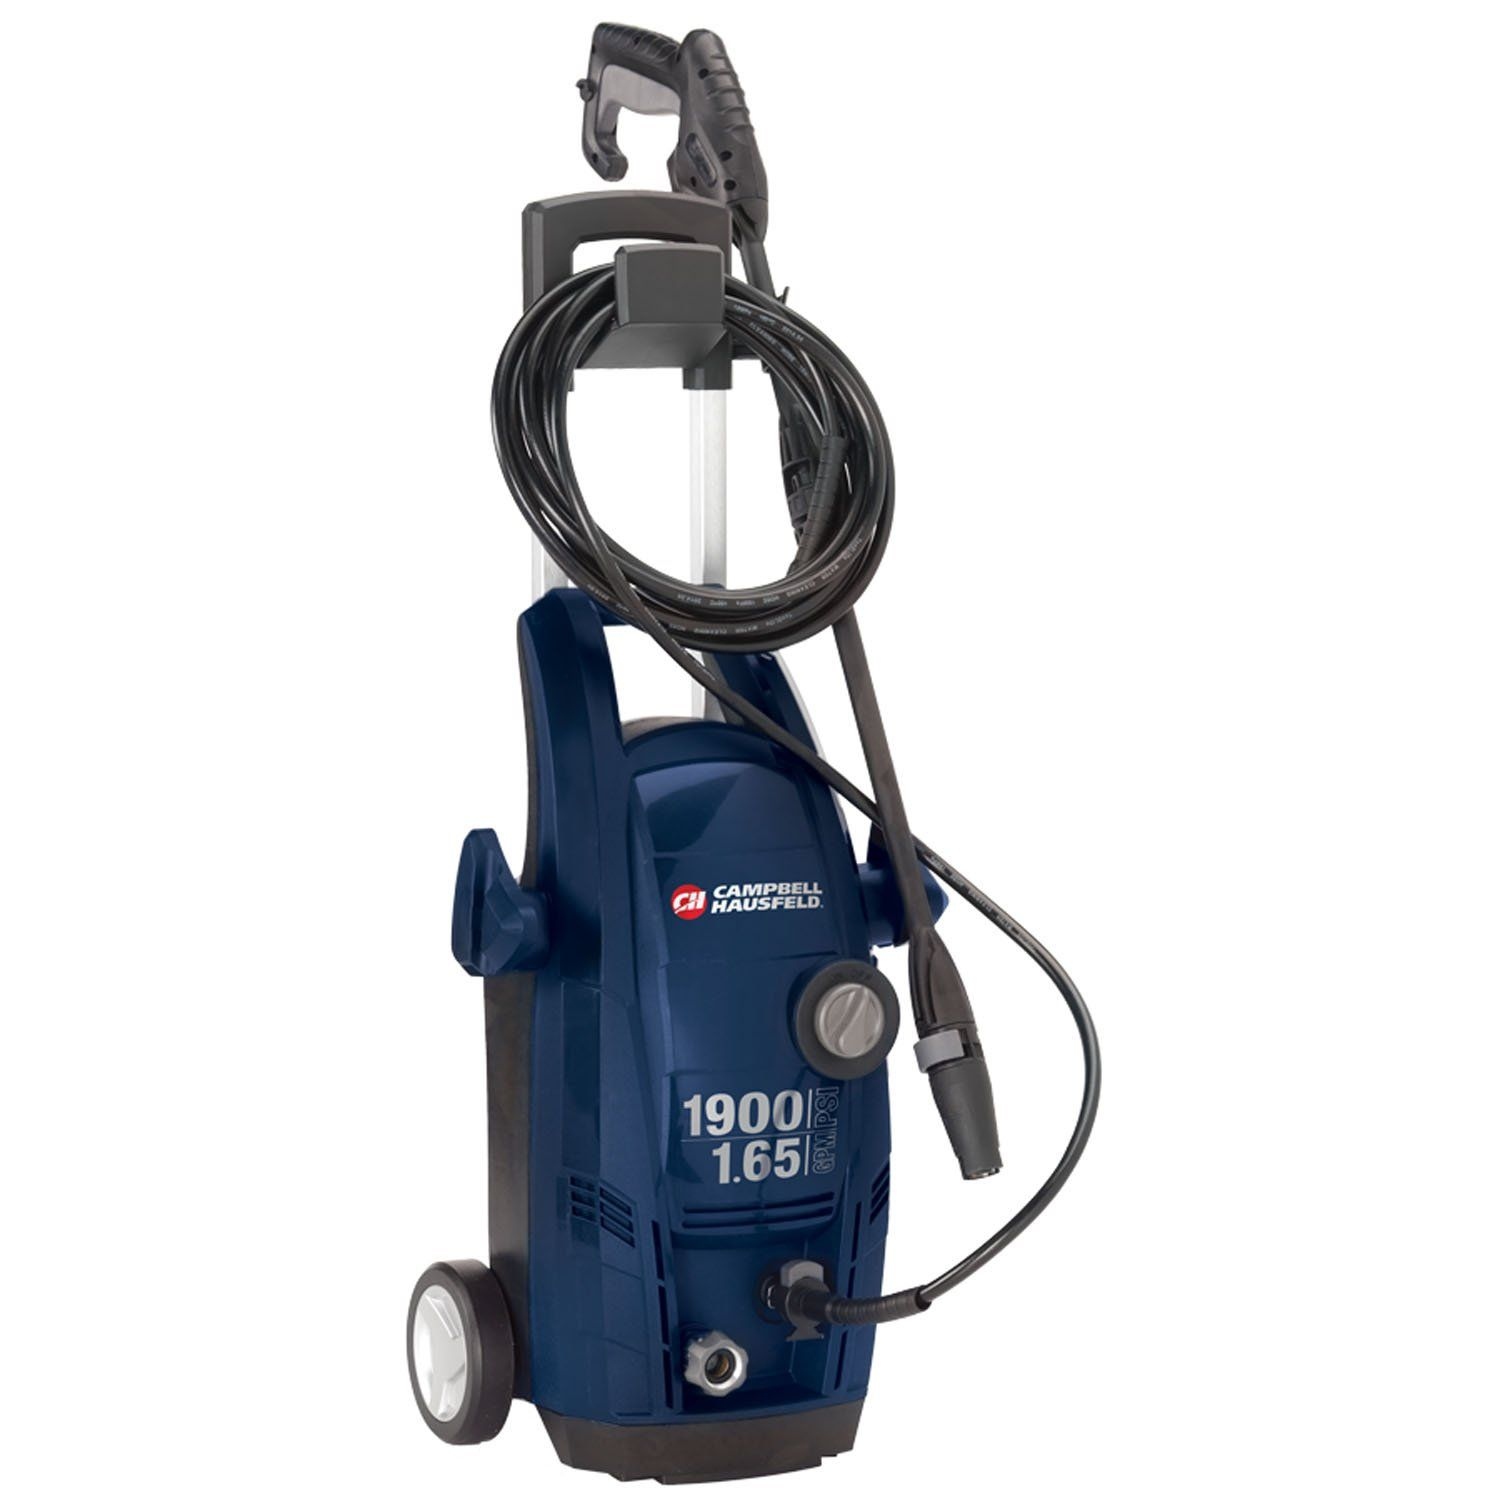 Best Electric Pressure Washer 2016 With Reviews Guides Electric Pressure Washer Pressure Washer Best Pressure Washer